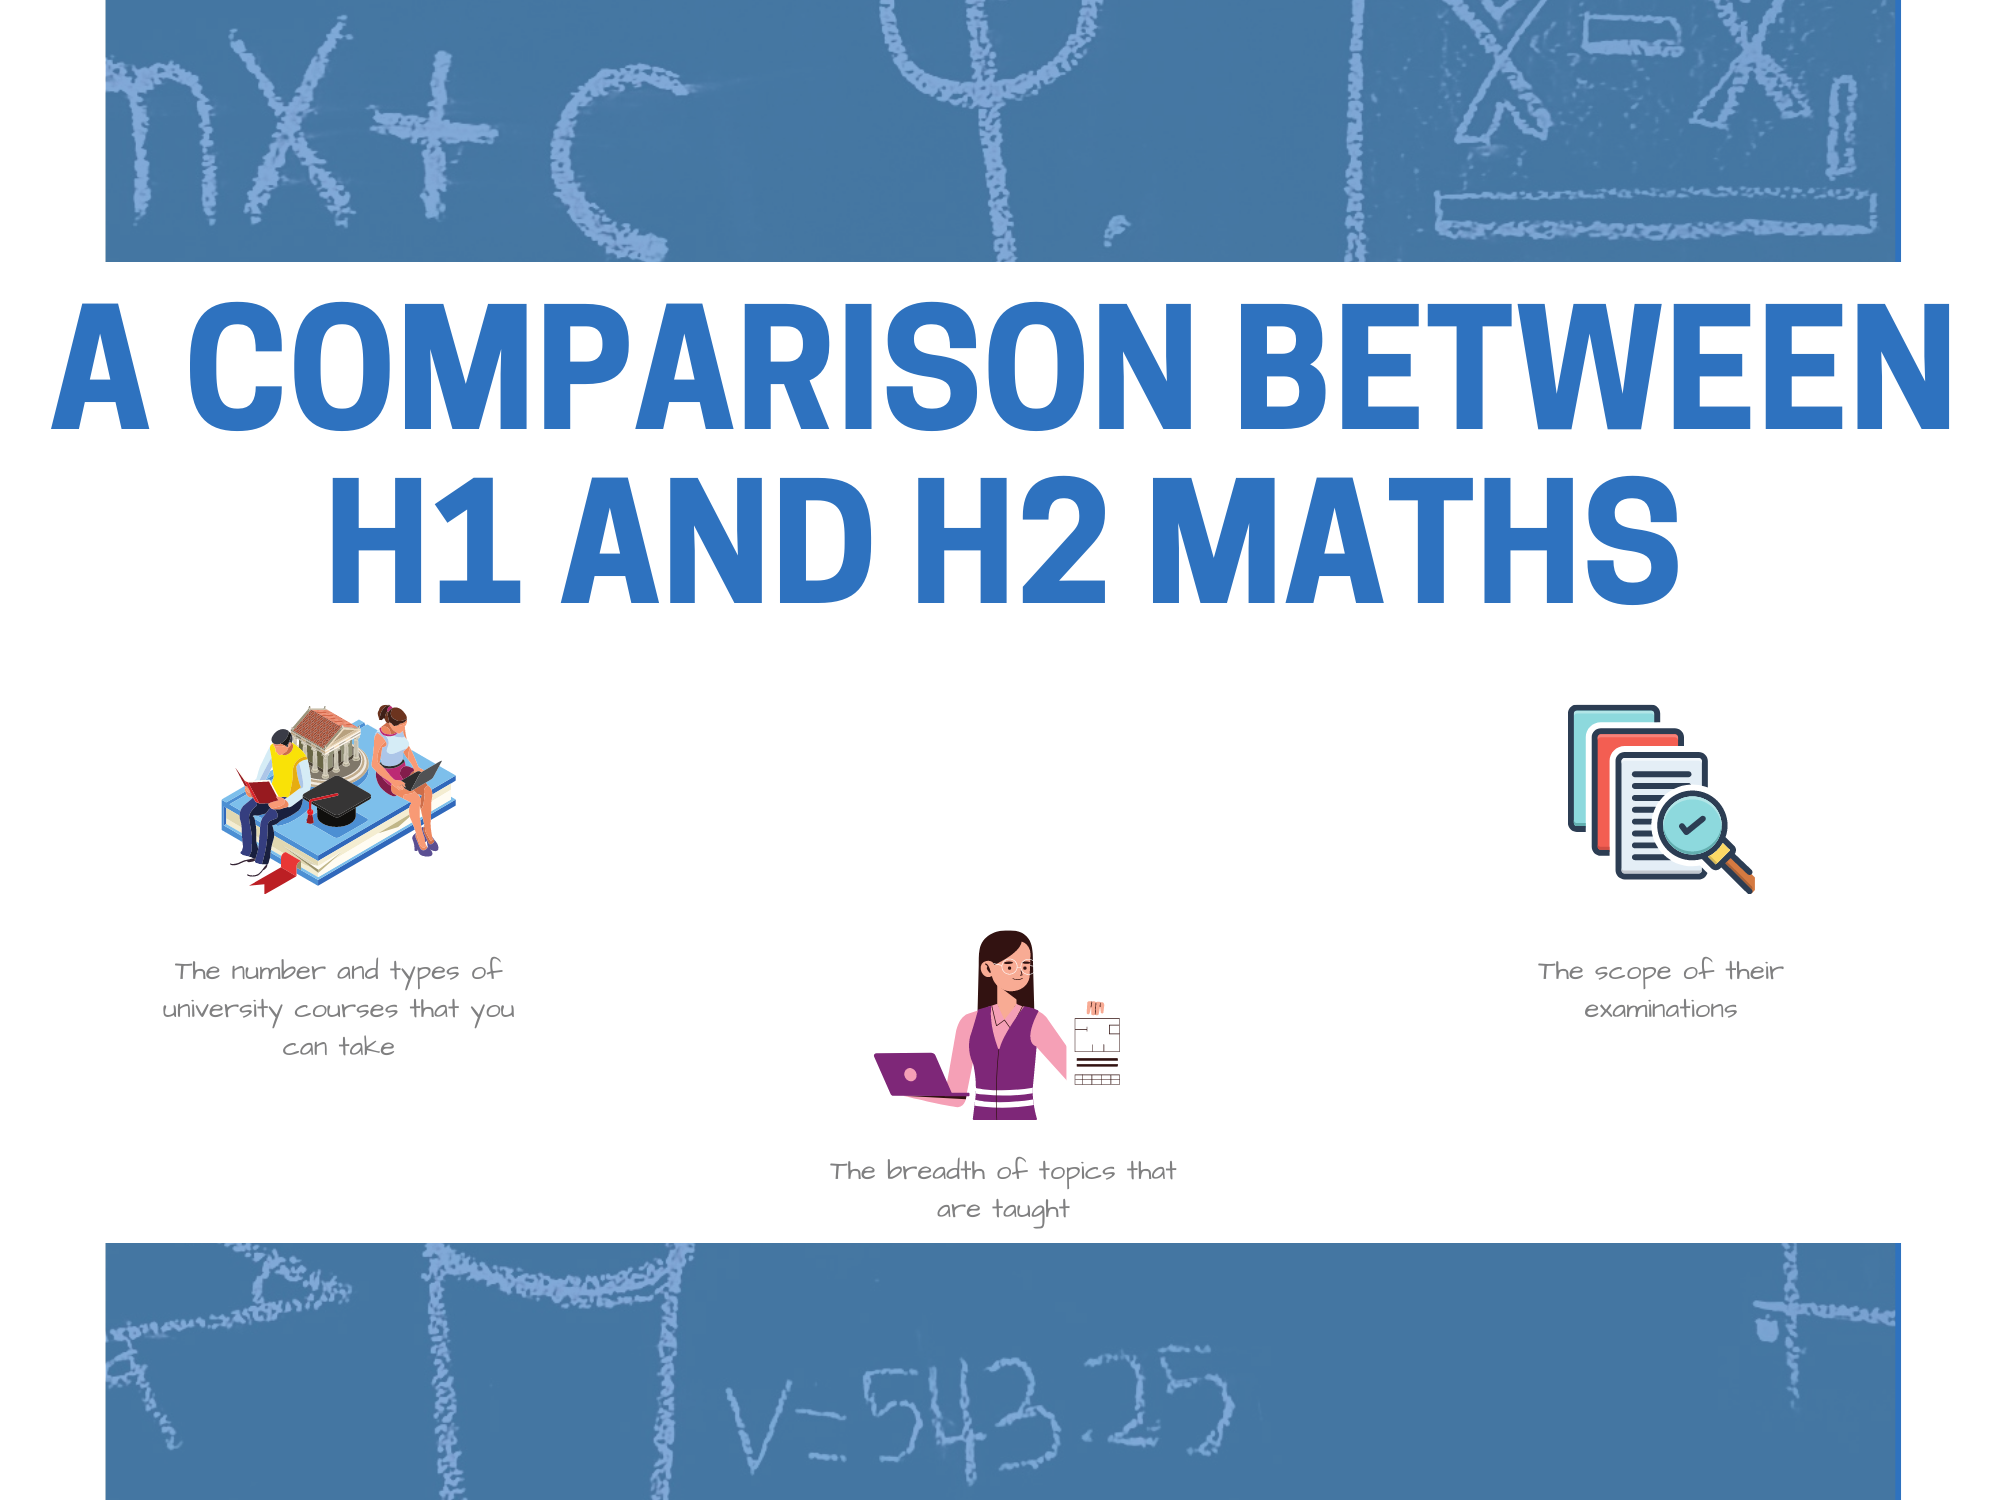 A-comparison-between-H1-and-H2-maths